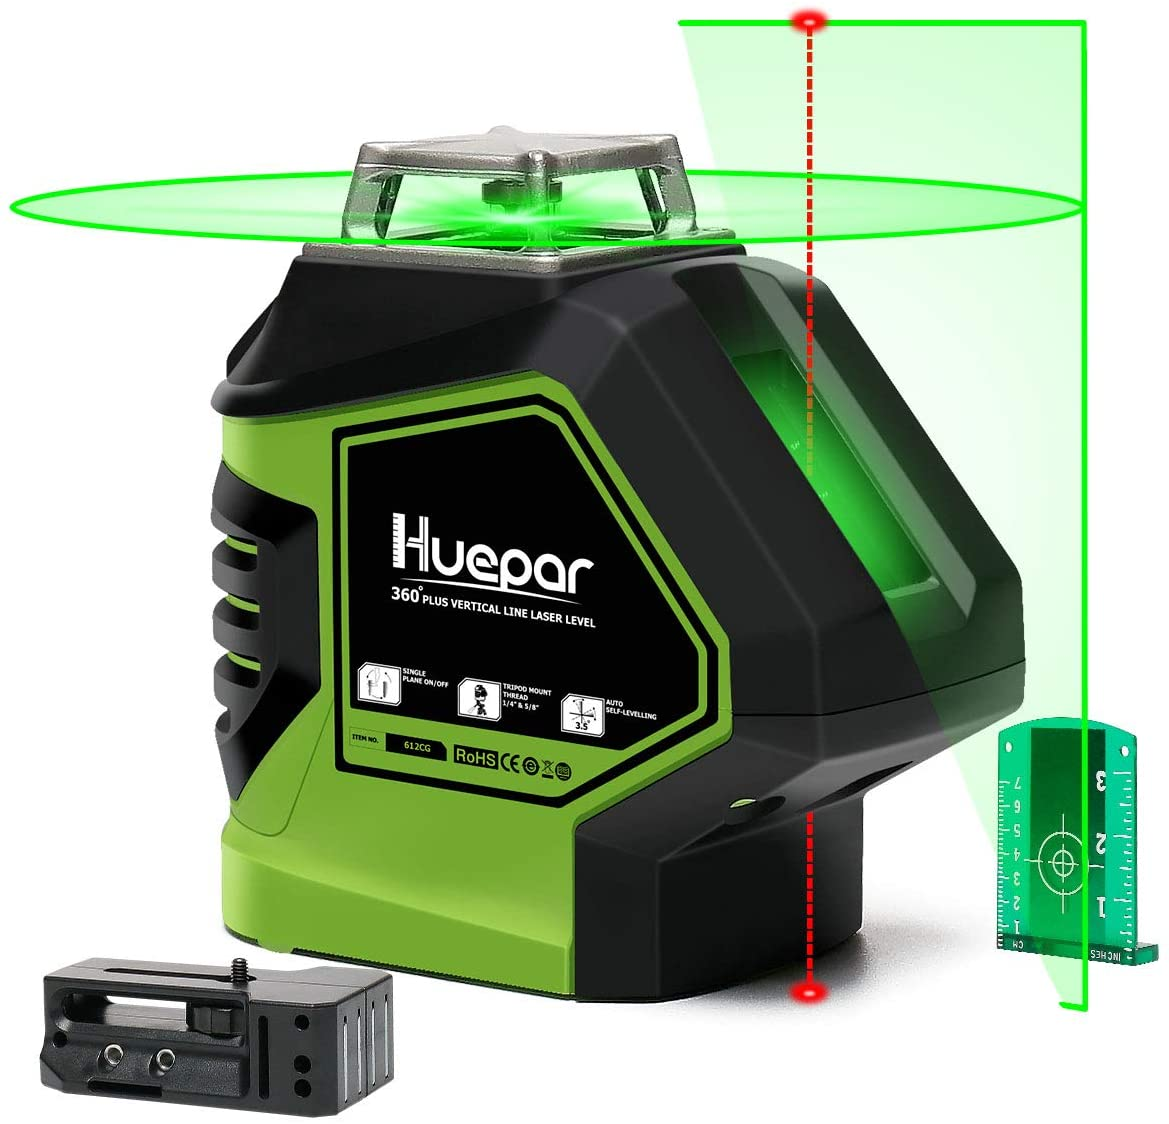 Huepar Self-Leveling Green Laser Level 360 Cross Line with 2 Plumb Dots Laser Tool -360-Degree Horizontal Line Plus Large Fan Angle of Vertical Beam with Up Down Points -Magnetic Pivoting Base 621CG